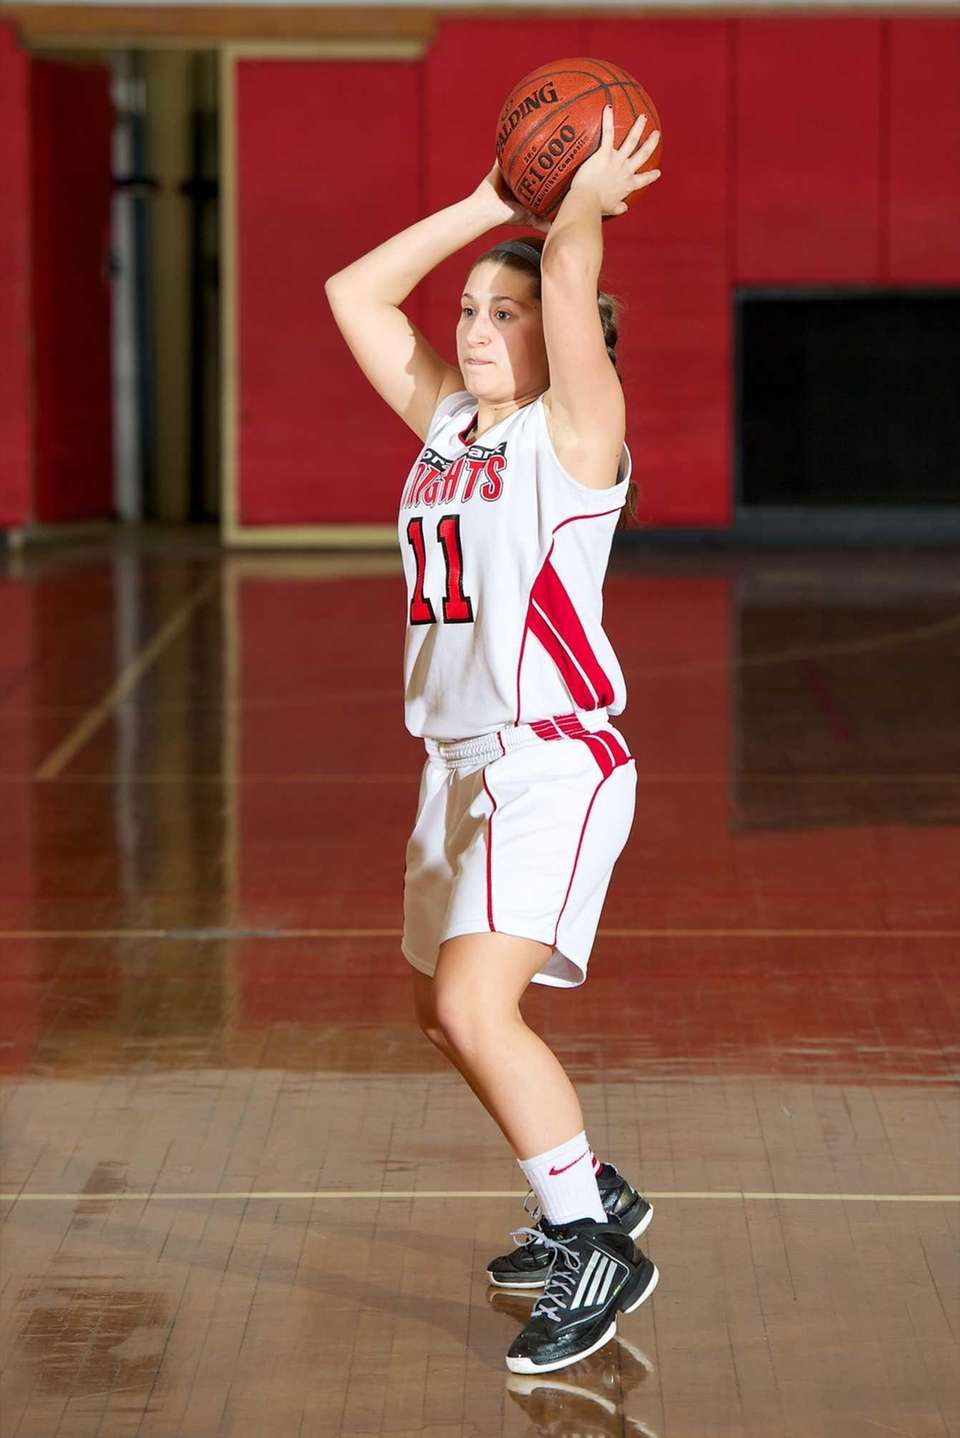 Floral Park guard Jocelyn Penteck looks to make